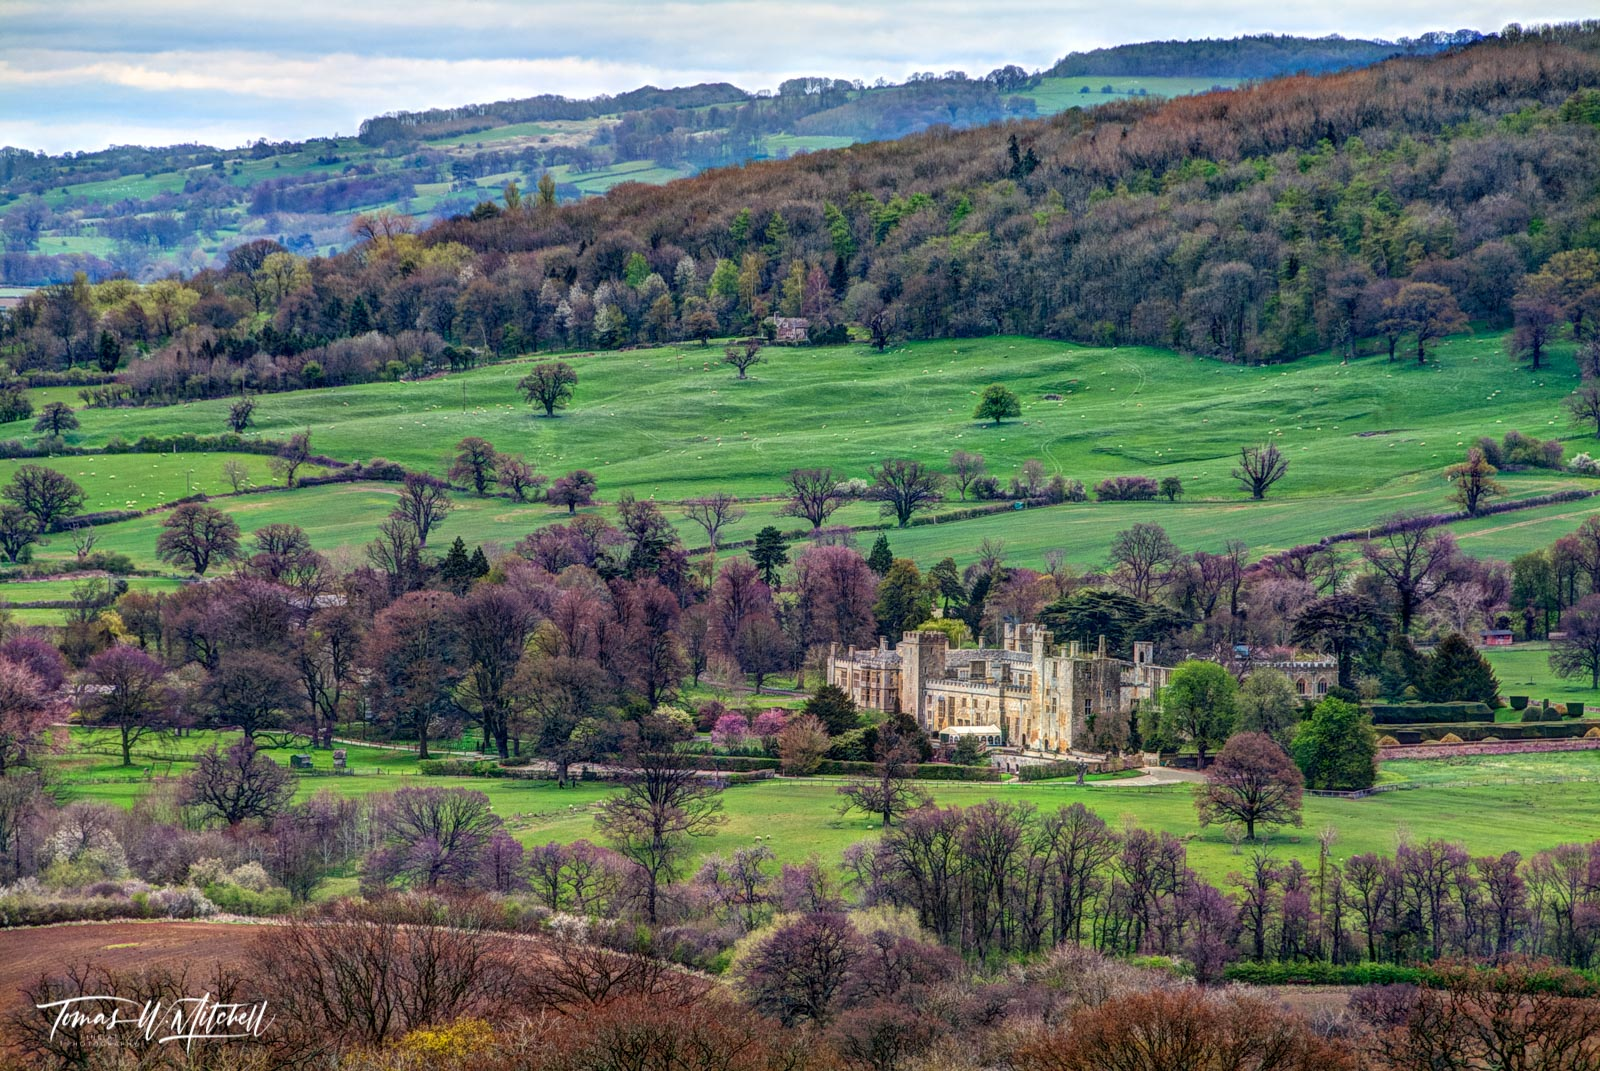 limited edition, museum grade, fine art, prints, sudeley castle, cotswolds, winchcombe, gloucestershire, england, 15th century, castle, garden, english countryside, photograph, scenery,  trees, spring, photo